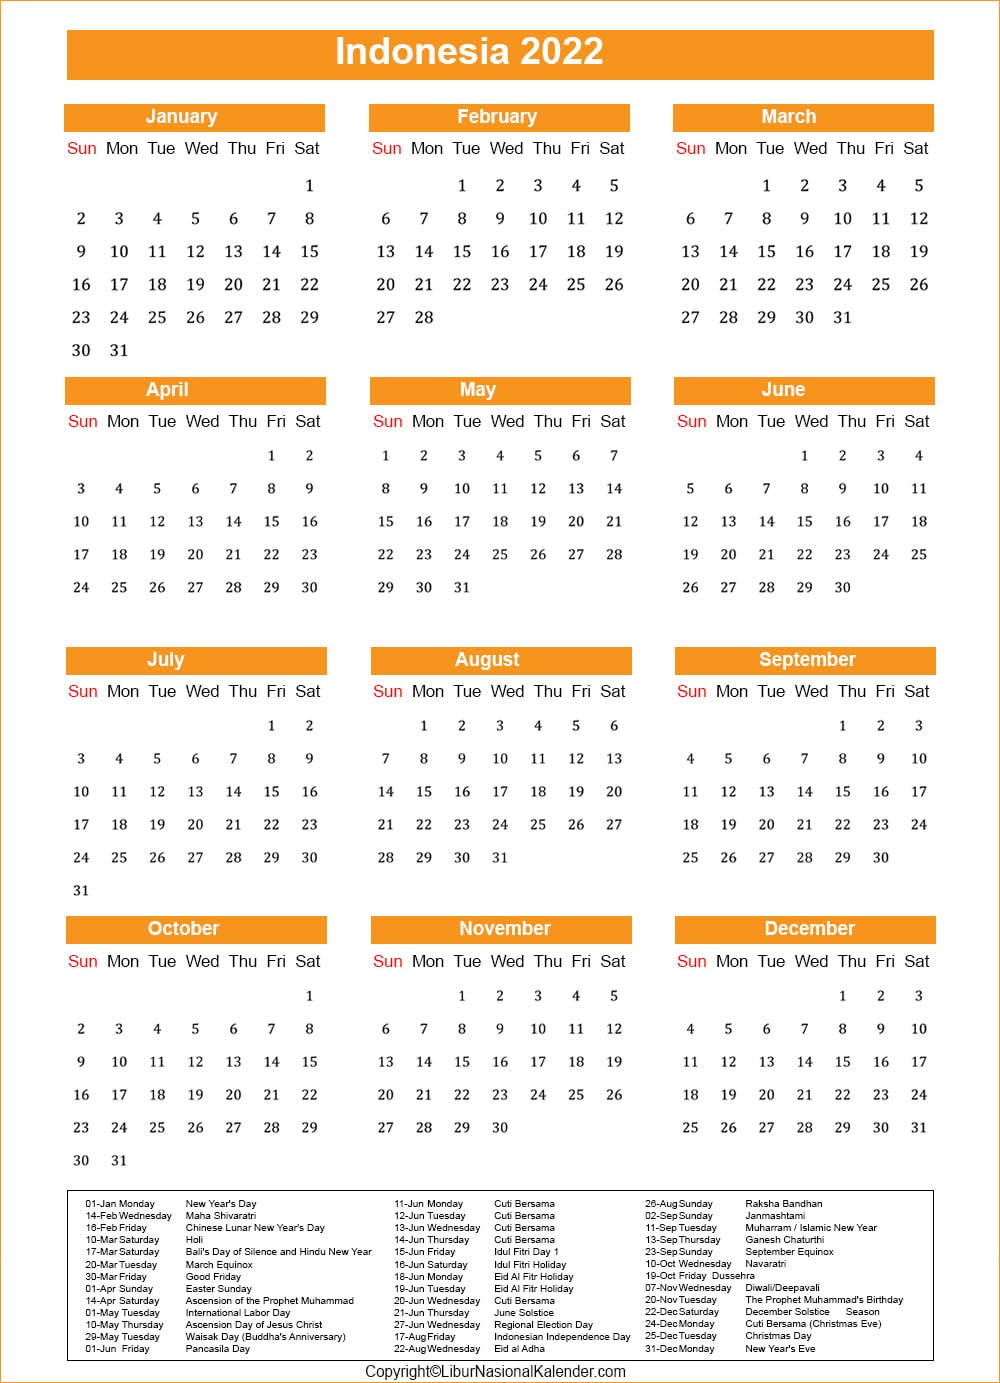 Indonesia Calendar 2022 with Holiday